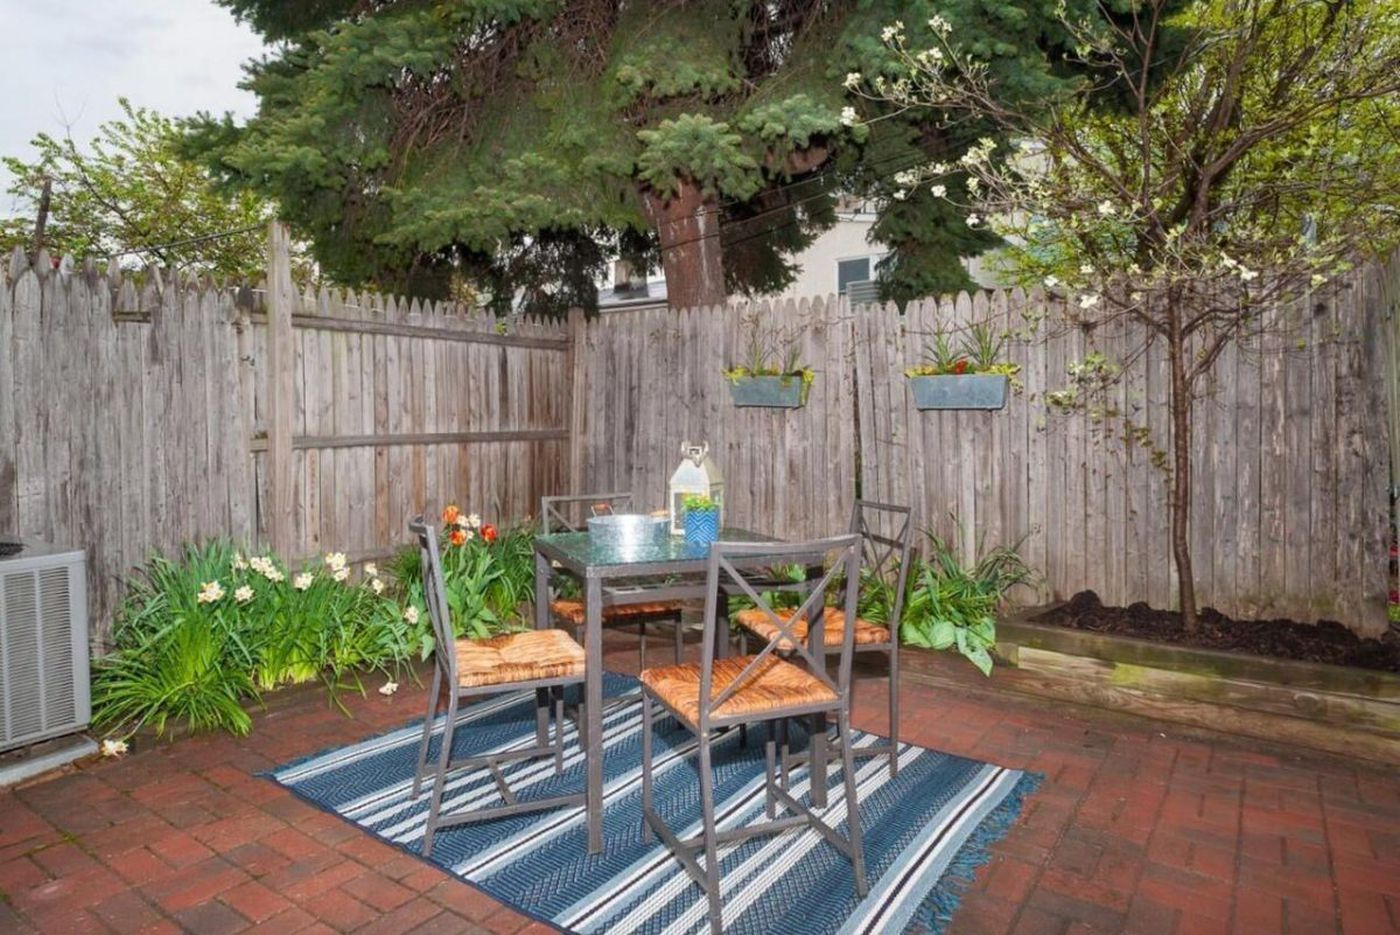 On the market: An older Fishtown starter home with 'some nice, modern touches'